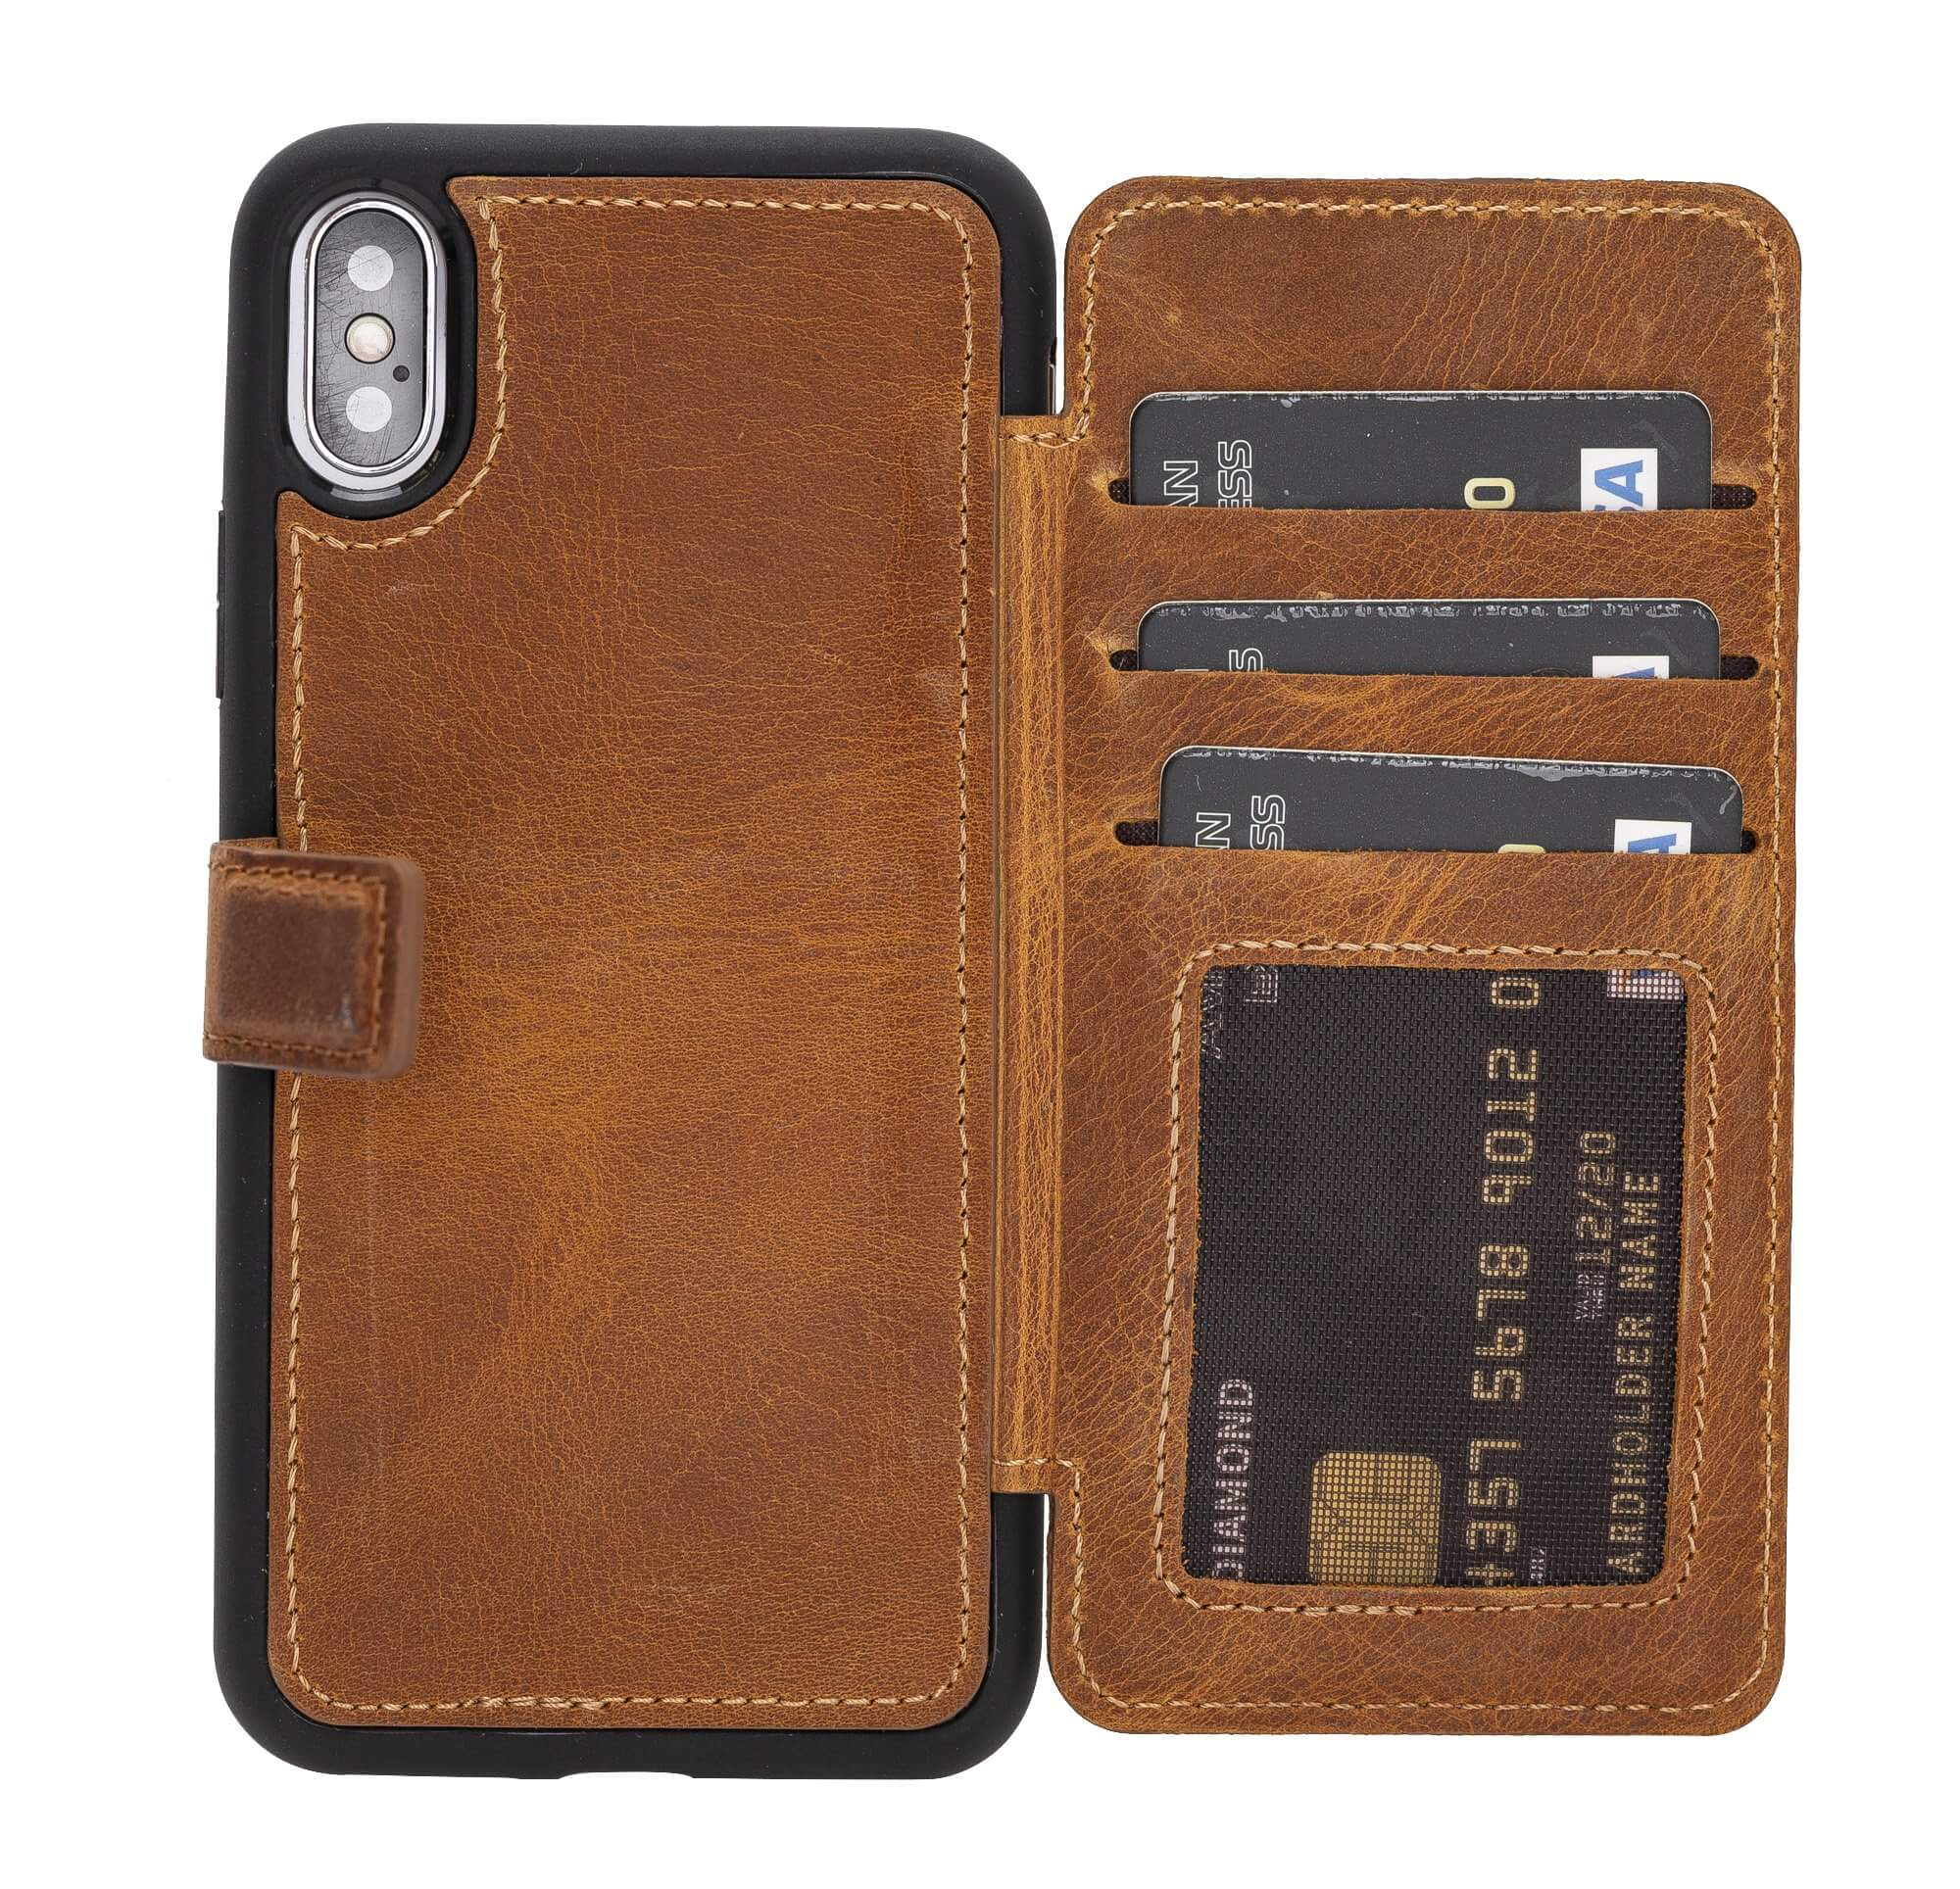 Verona RFID Blocking Leather Slim Wallet Case for iPhone XS